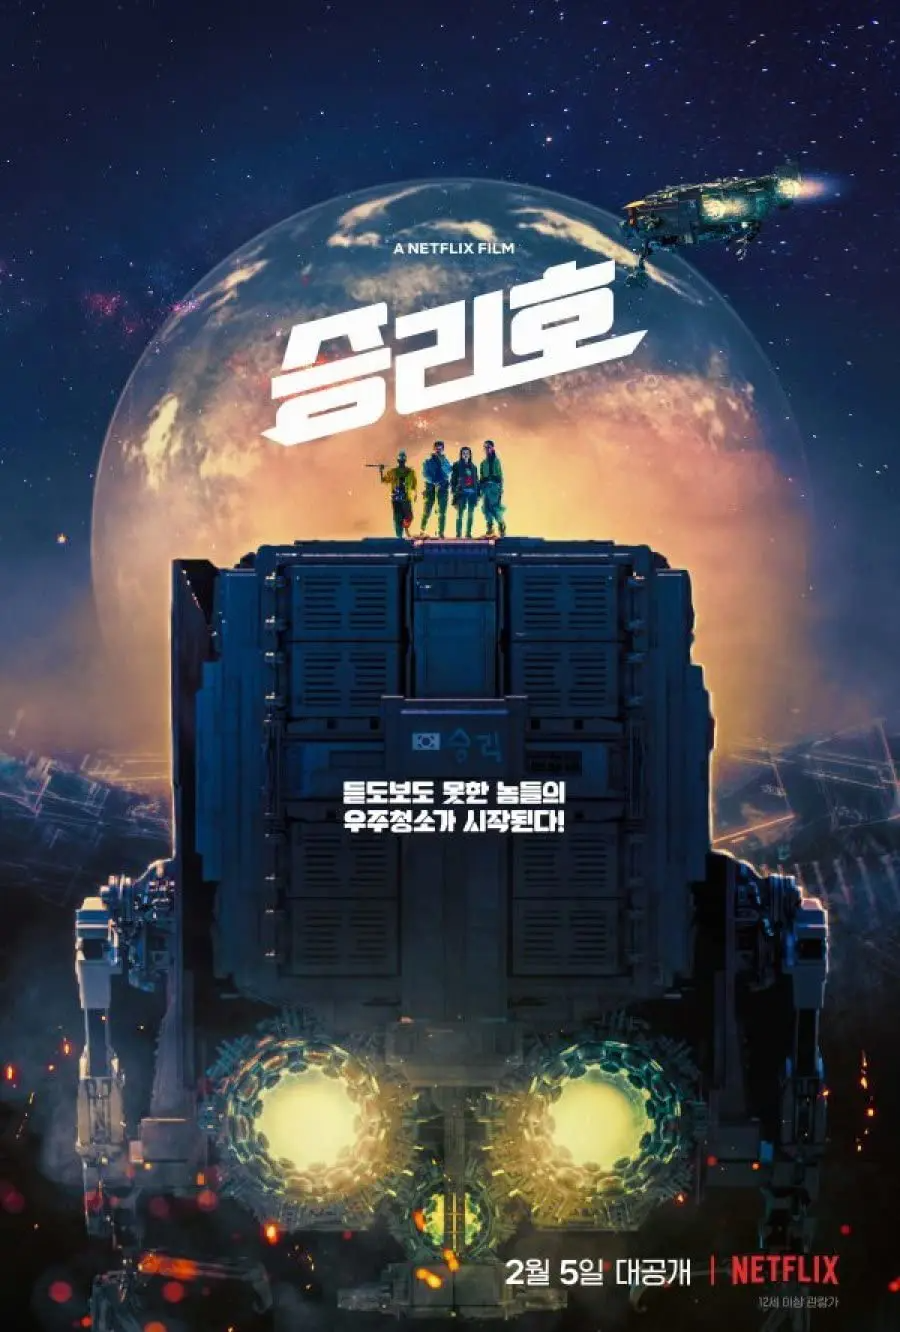 Space Sweepers Trailer Coming To Netflix February 5 2021 In 2021 Movie Posters Netflix Trailer Song